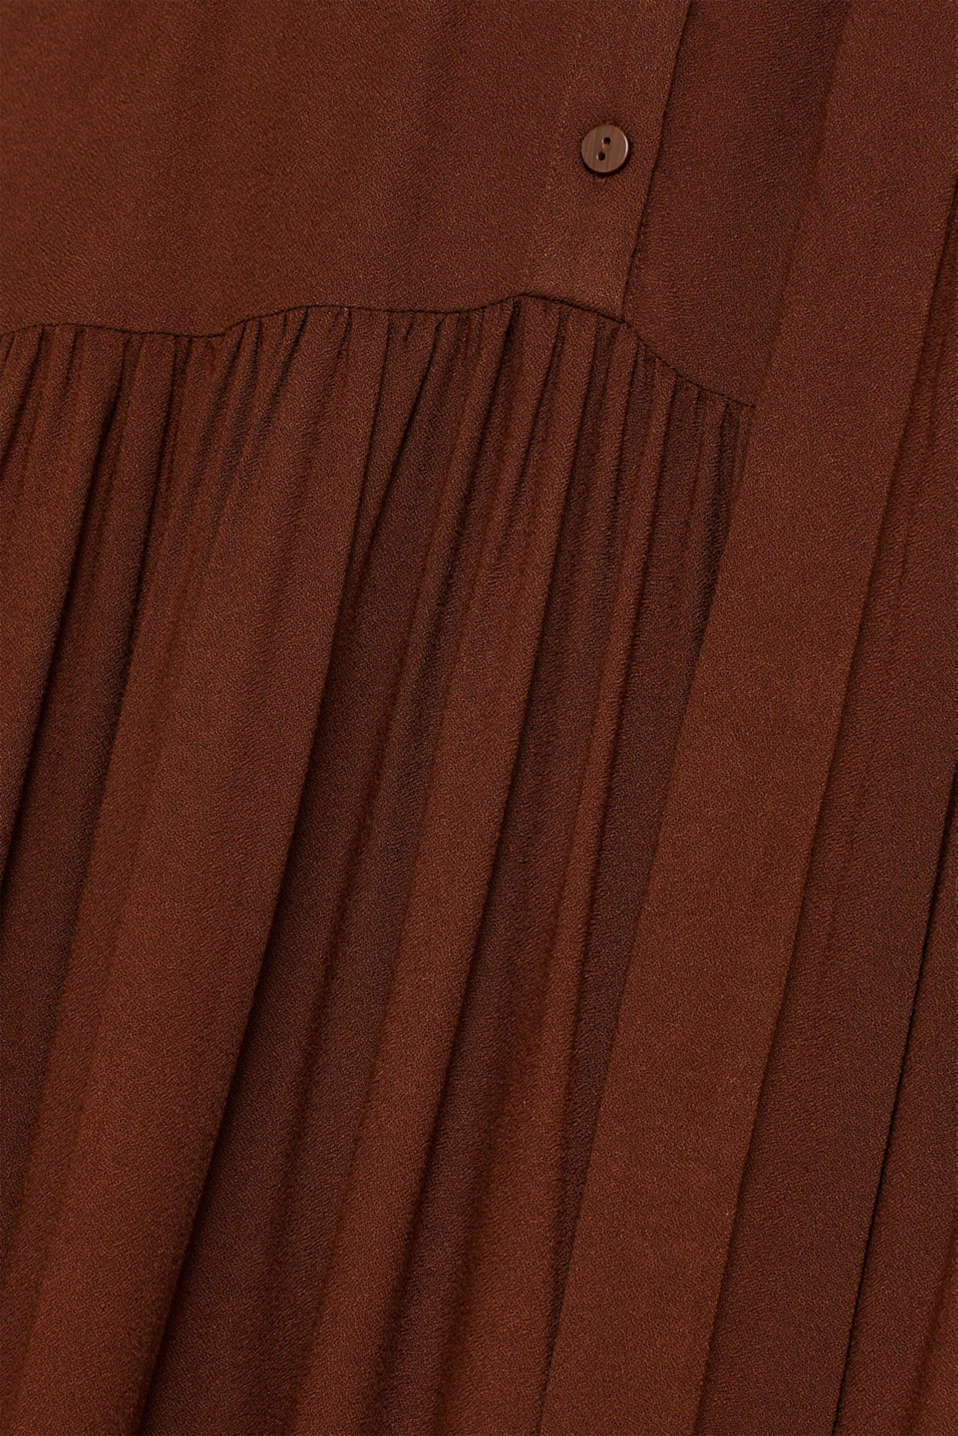 Midi dress with tiered skirt, DARK BROWN, detail image number 5